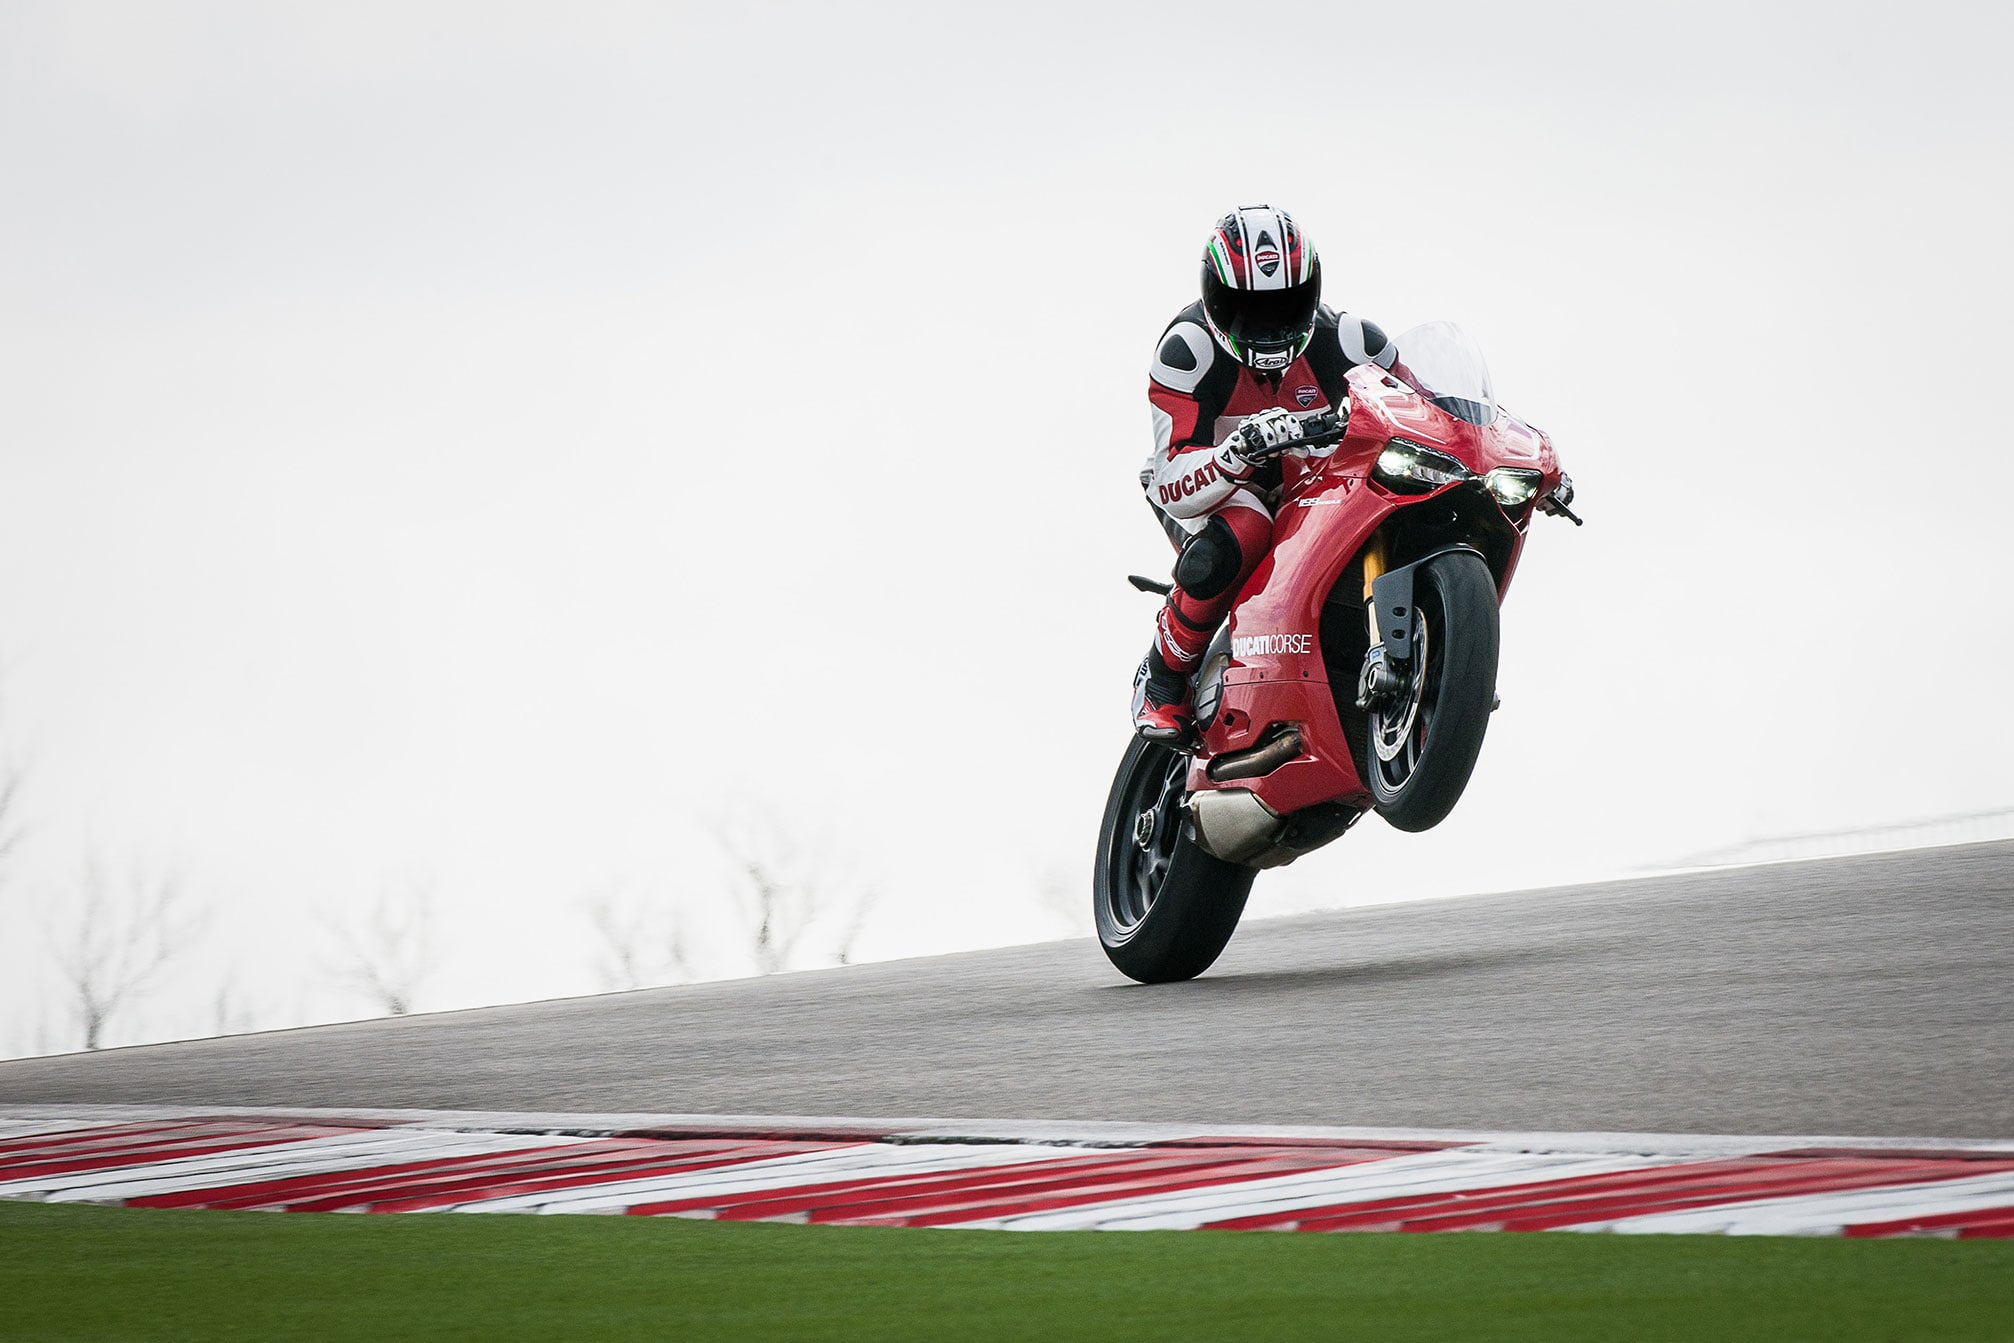 Ducati Panigale 1199 images